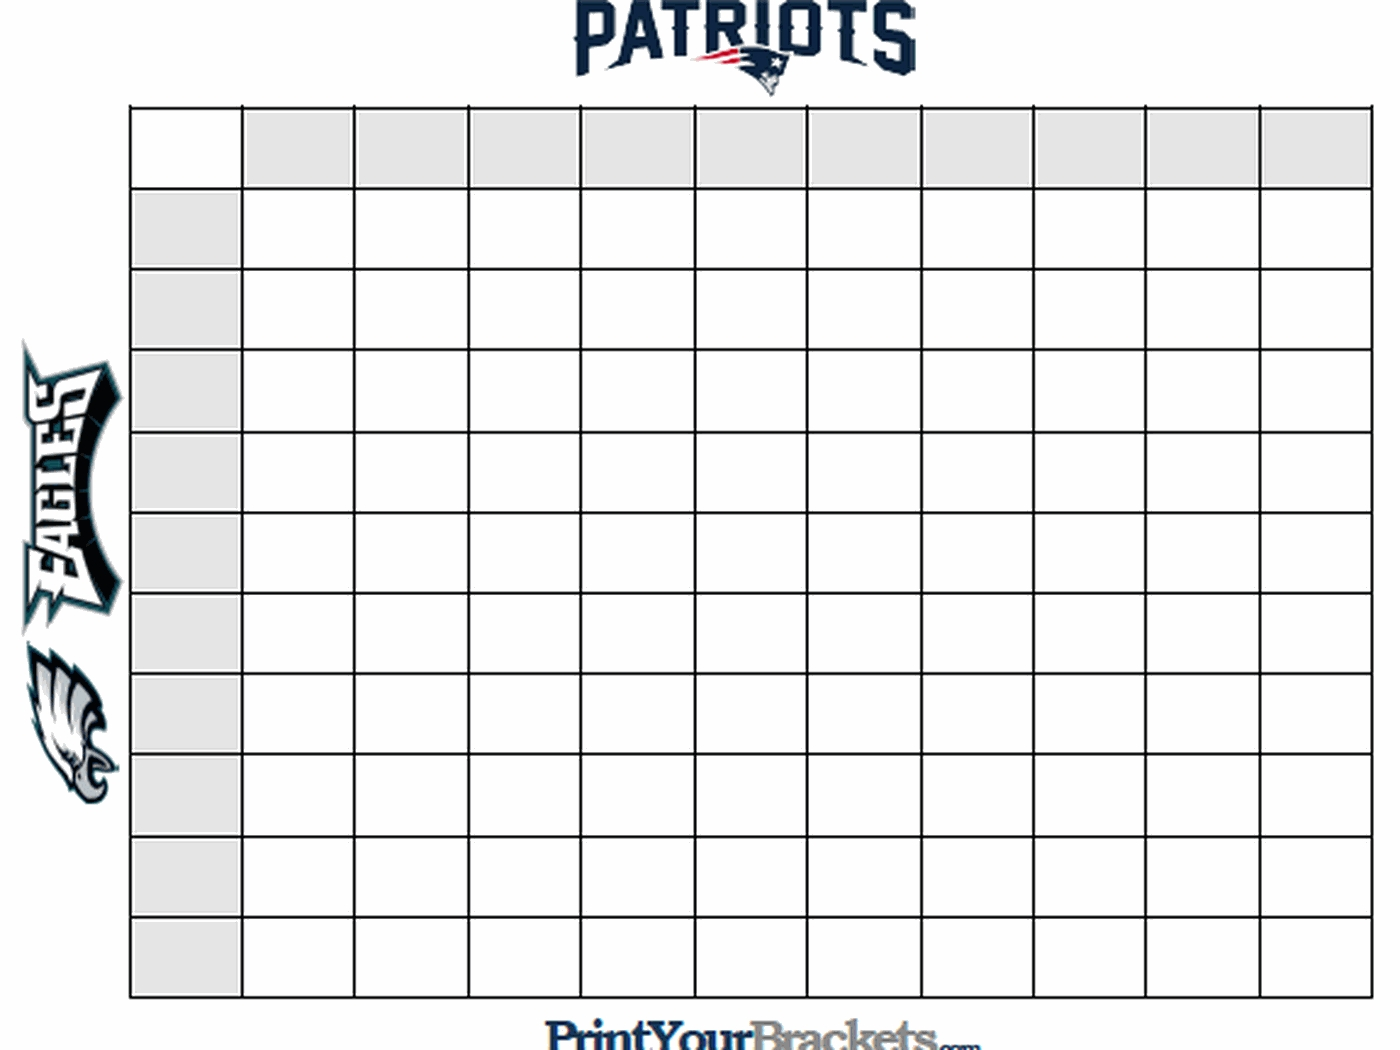 Super Bowl Squares Template, How To Play Online, And More inside Super Bowl Board Layout